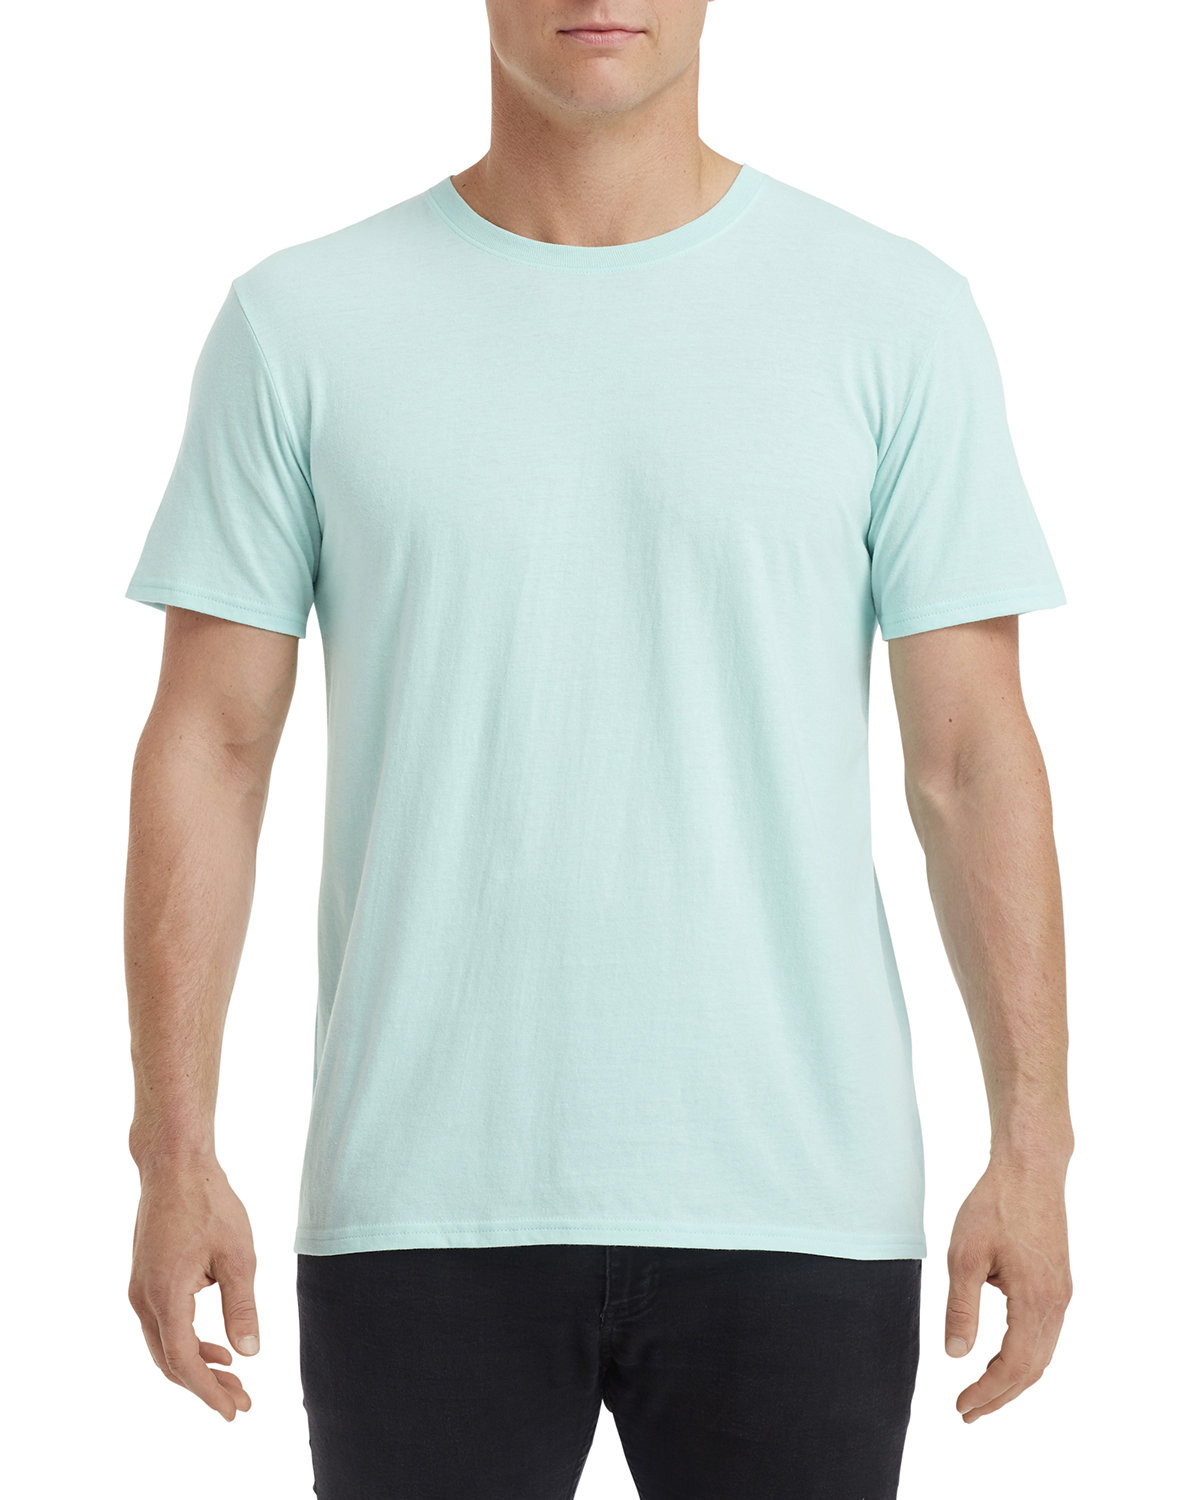 Anvil Adult Triblend T-Shirt TEAL ICE